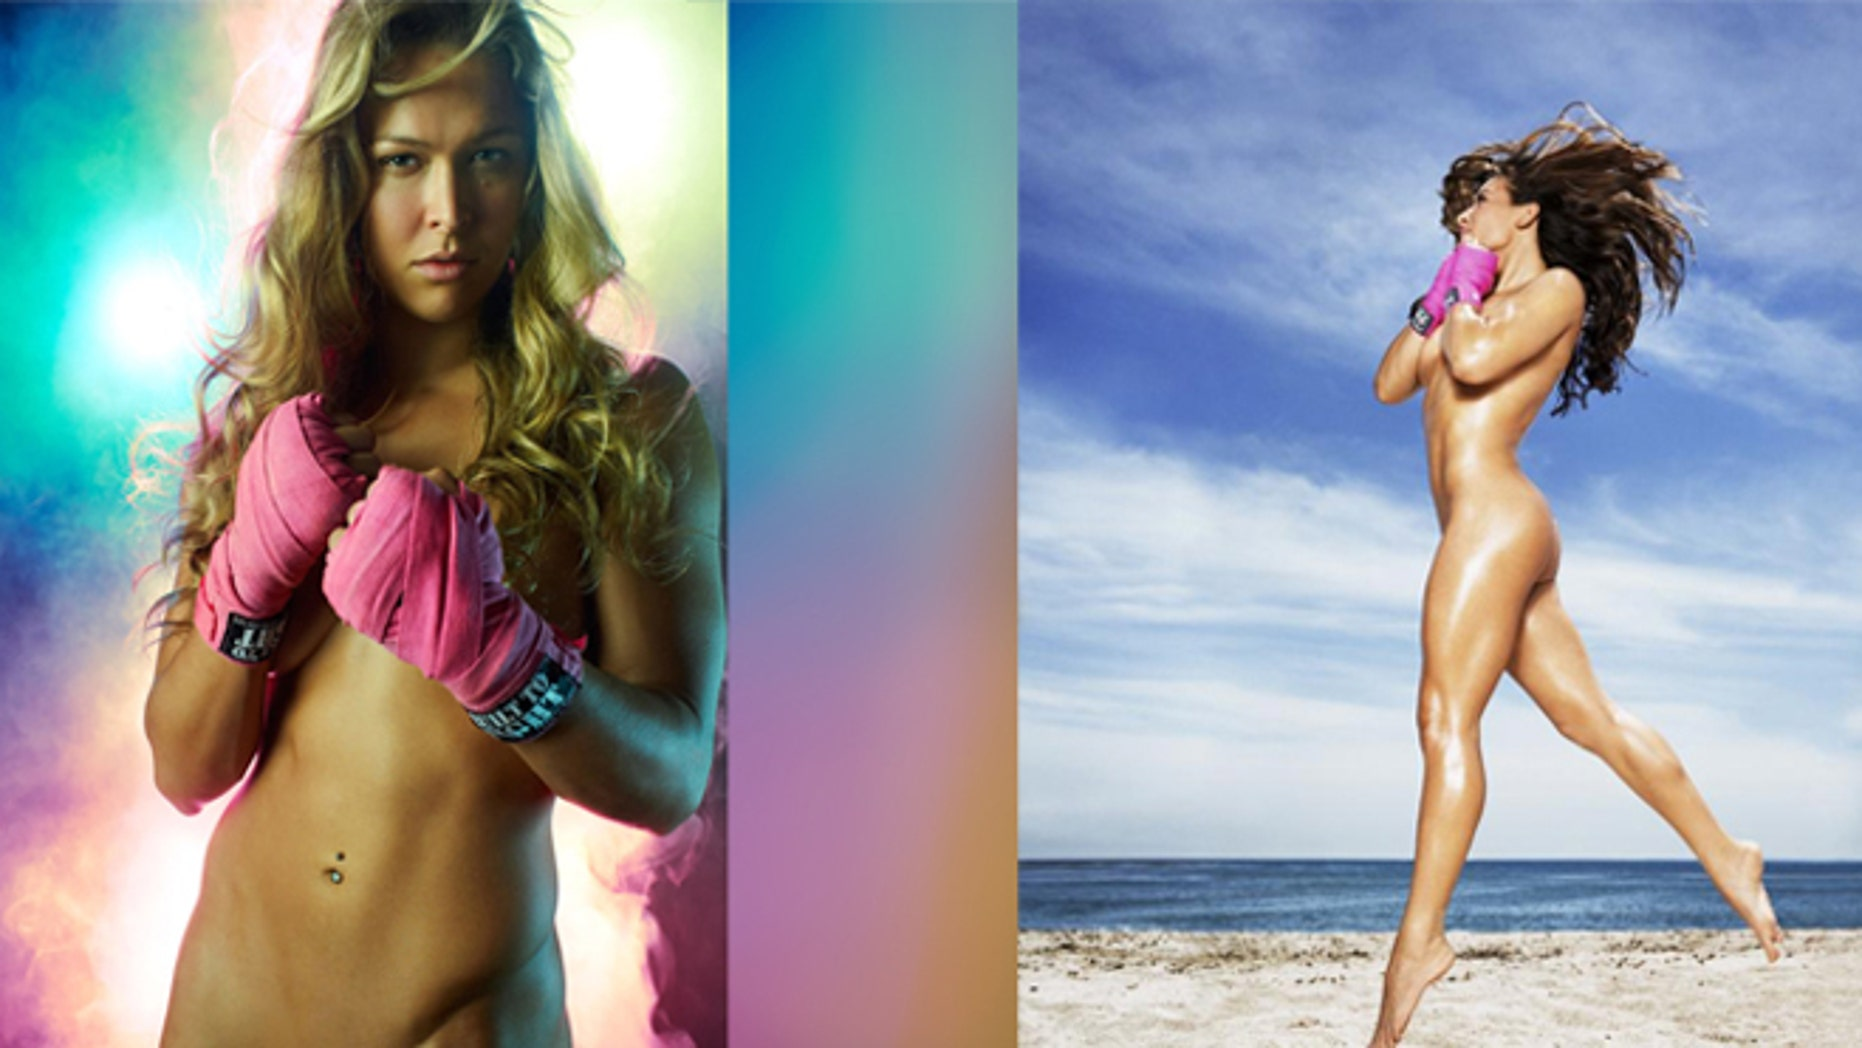 Ronda Rousey Left In The 2012 Issue And Miesha Tateright In